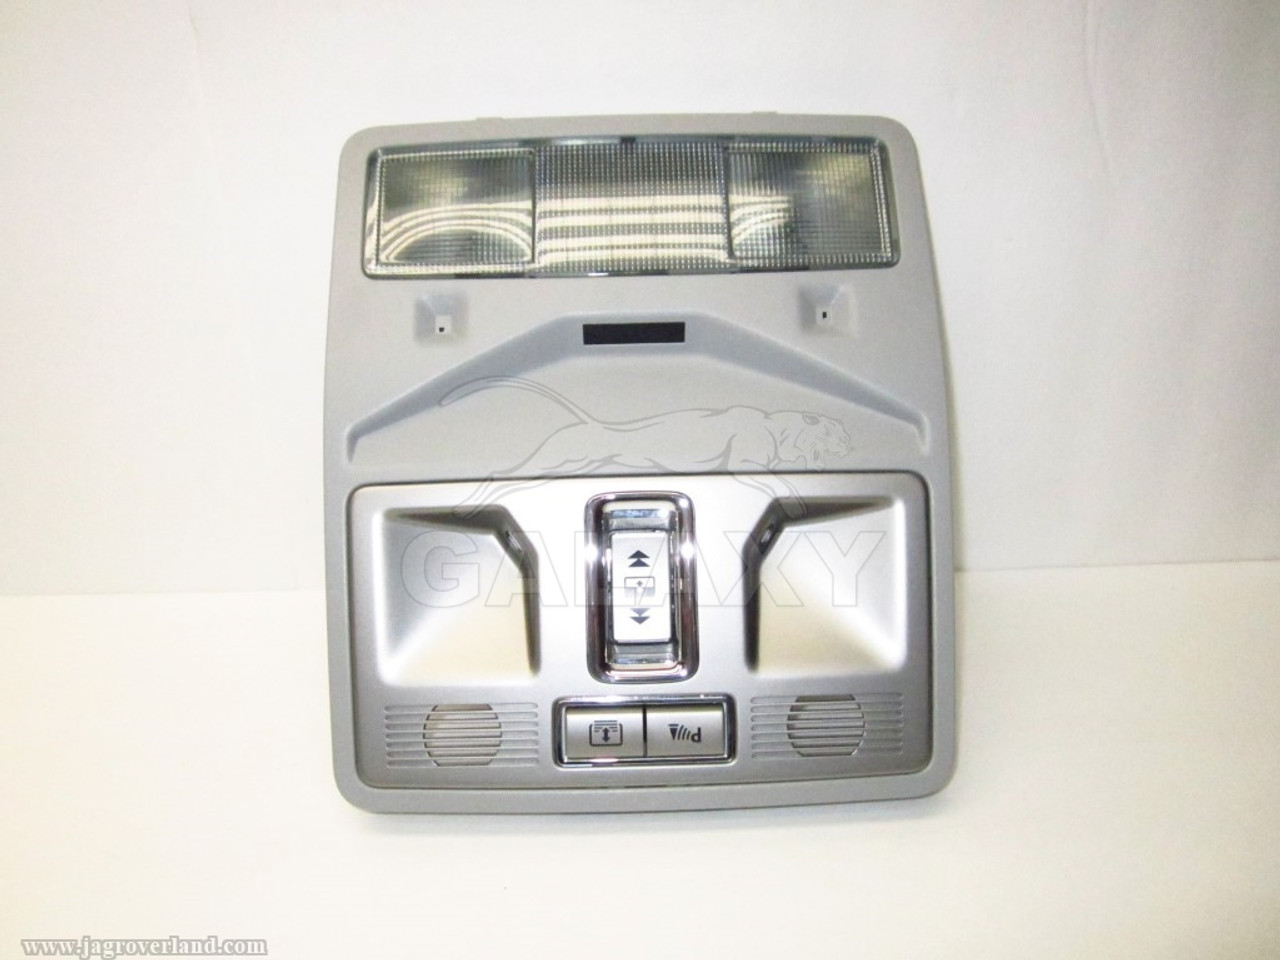 09-11 Xf Xfr Overhead Sunroof Maplight Parking Switch C2Z5146Lhj  8X23-Mbbv-H Lhj